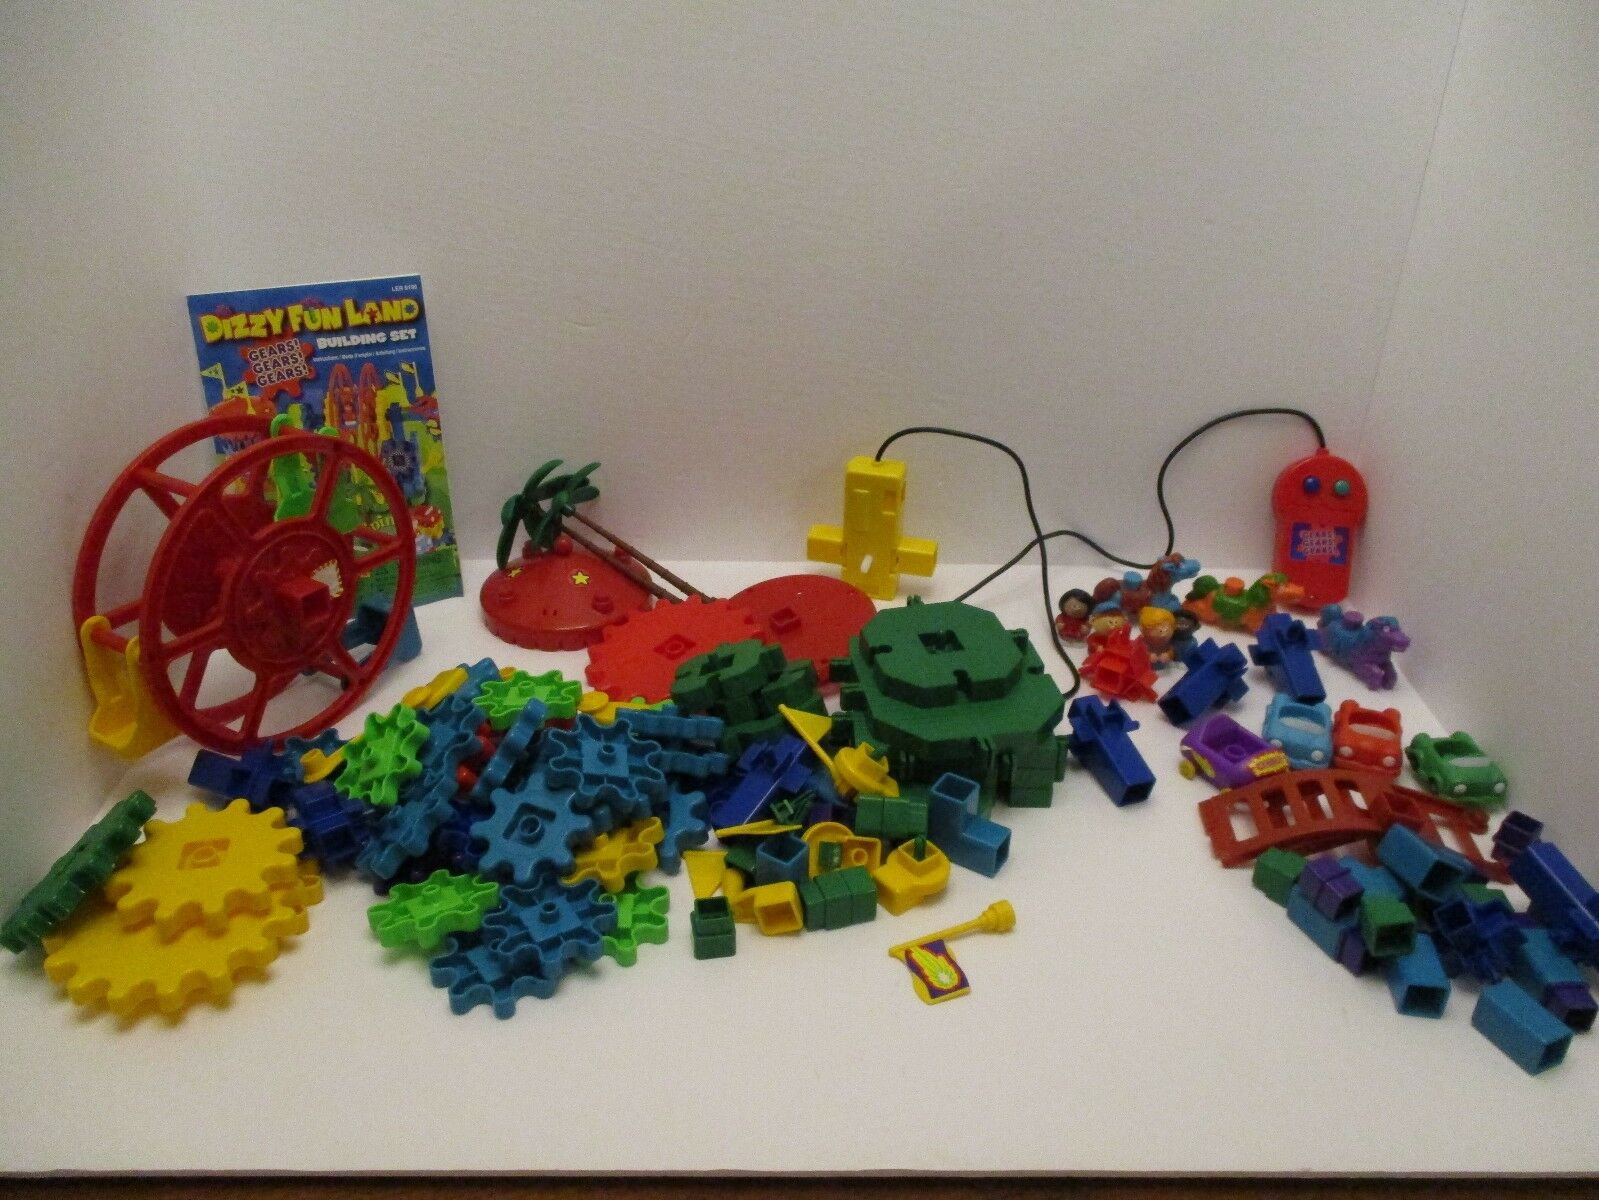 Learning Resources Dizzy Fun Land Motorized Gears Set Missing 1 Part Used